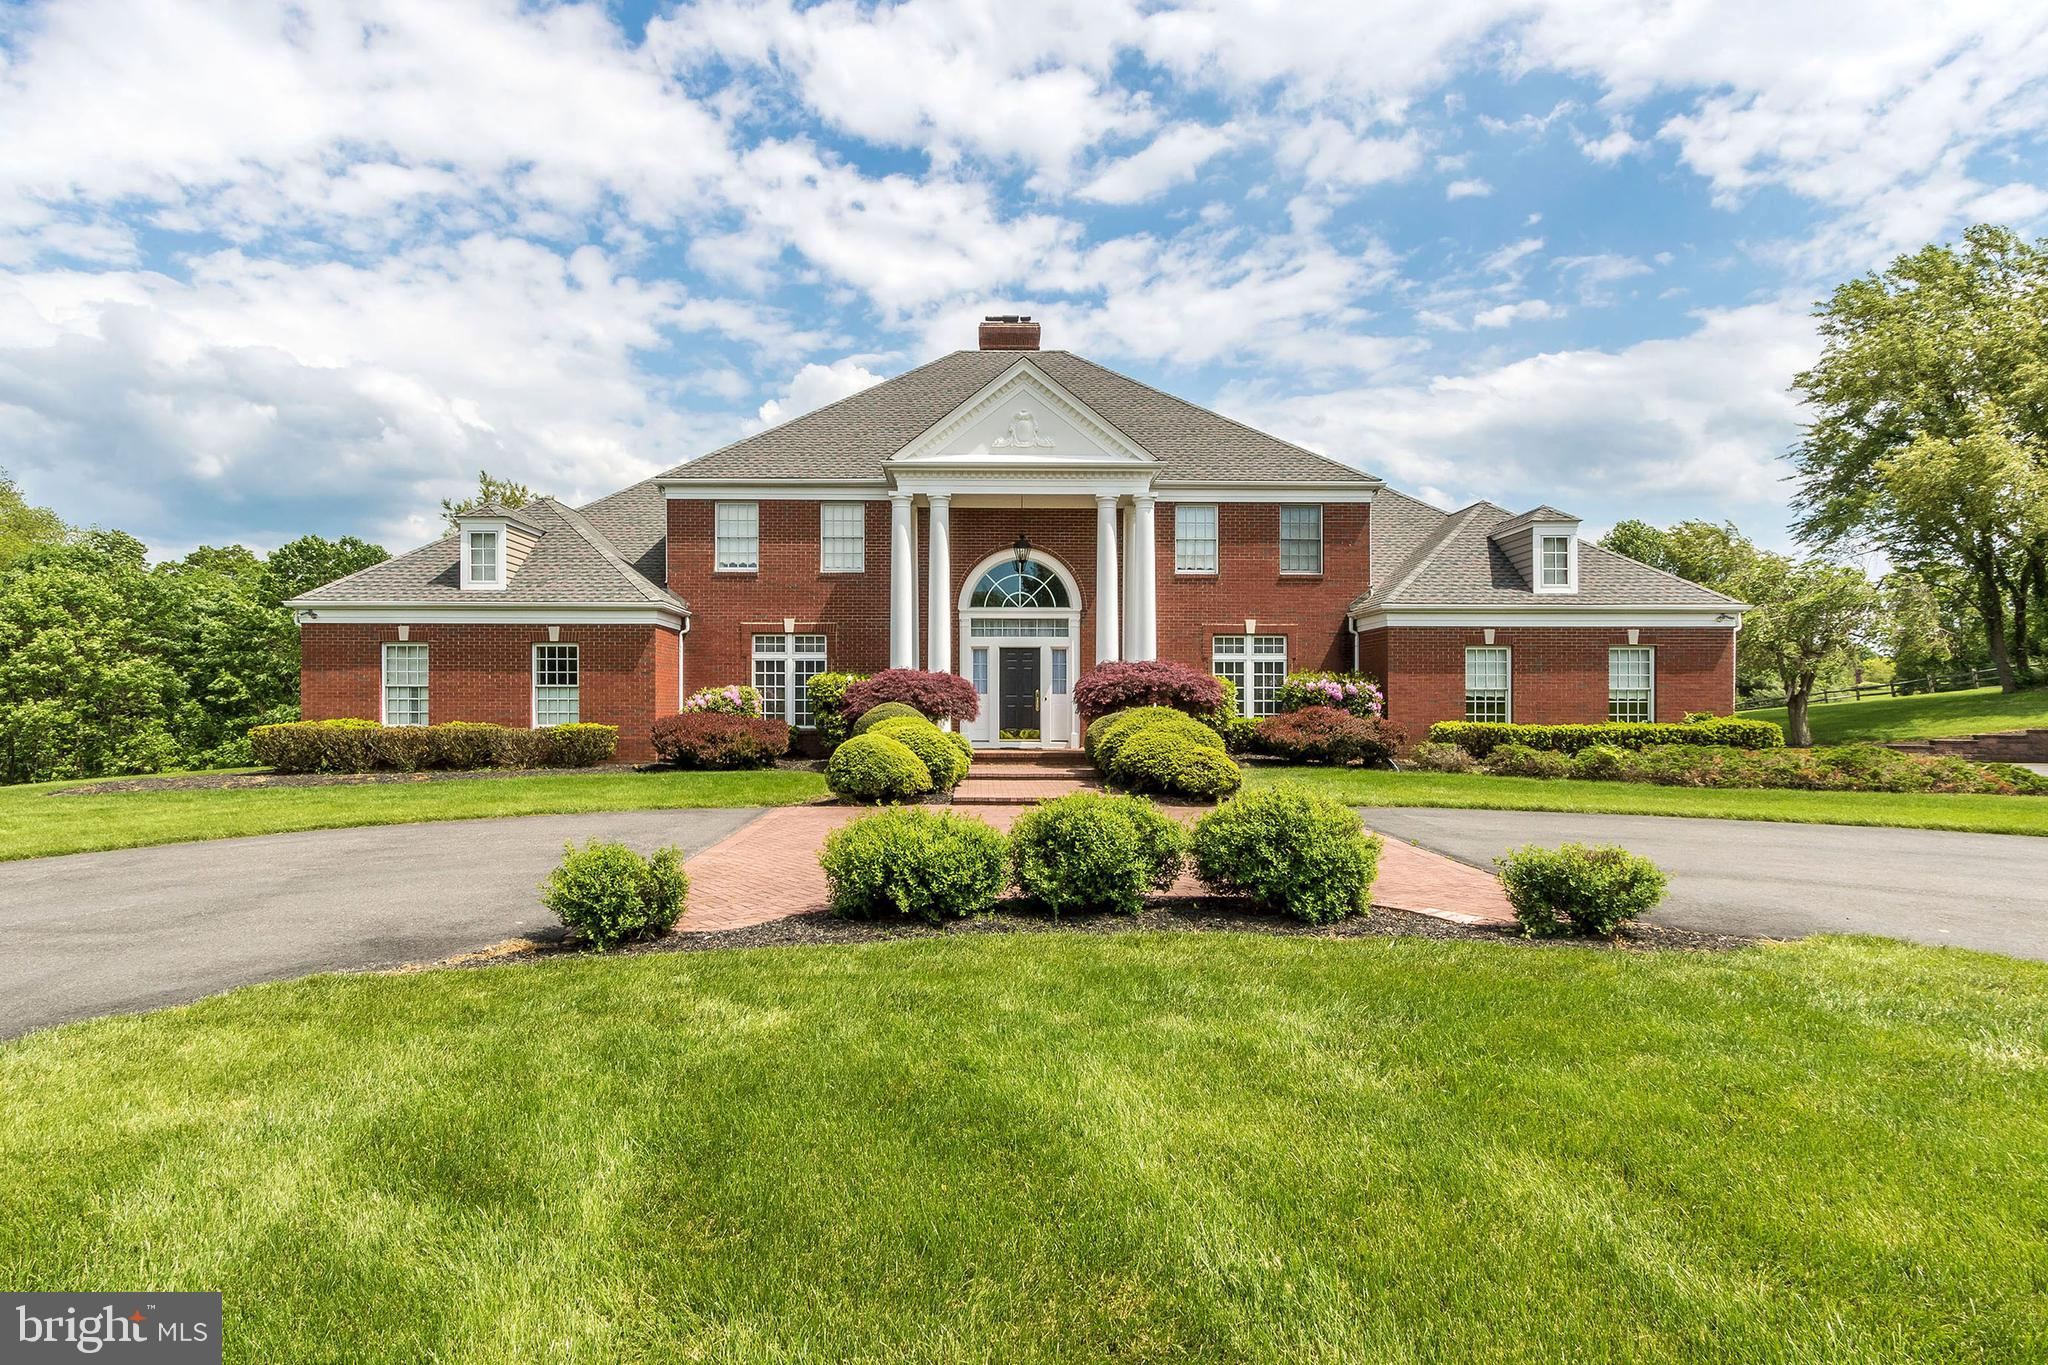 6 CHASE HOLLOW ROAD, HOPEWELL, NJ 08525